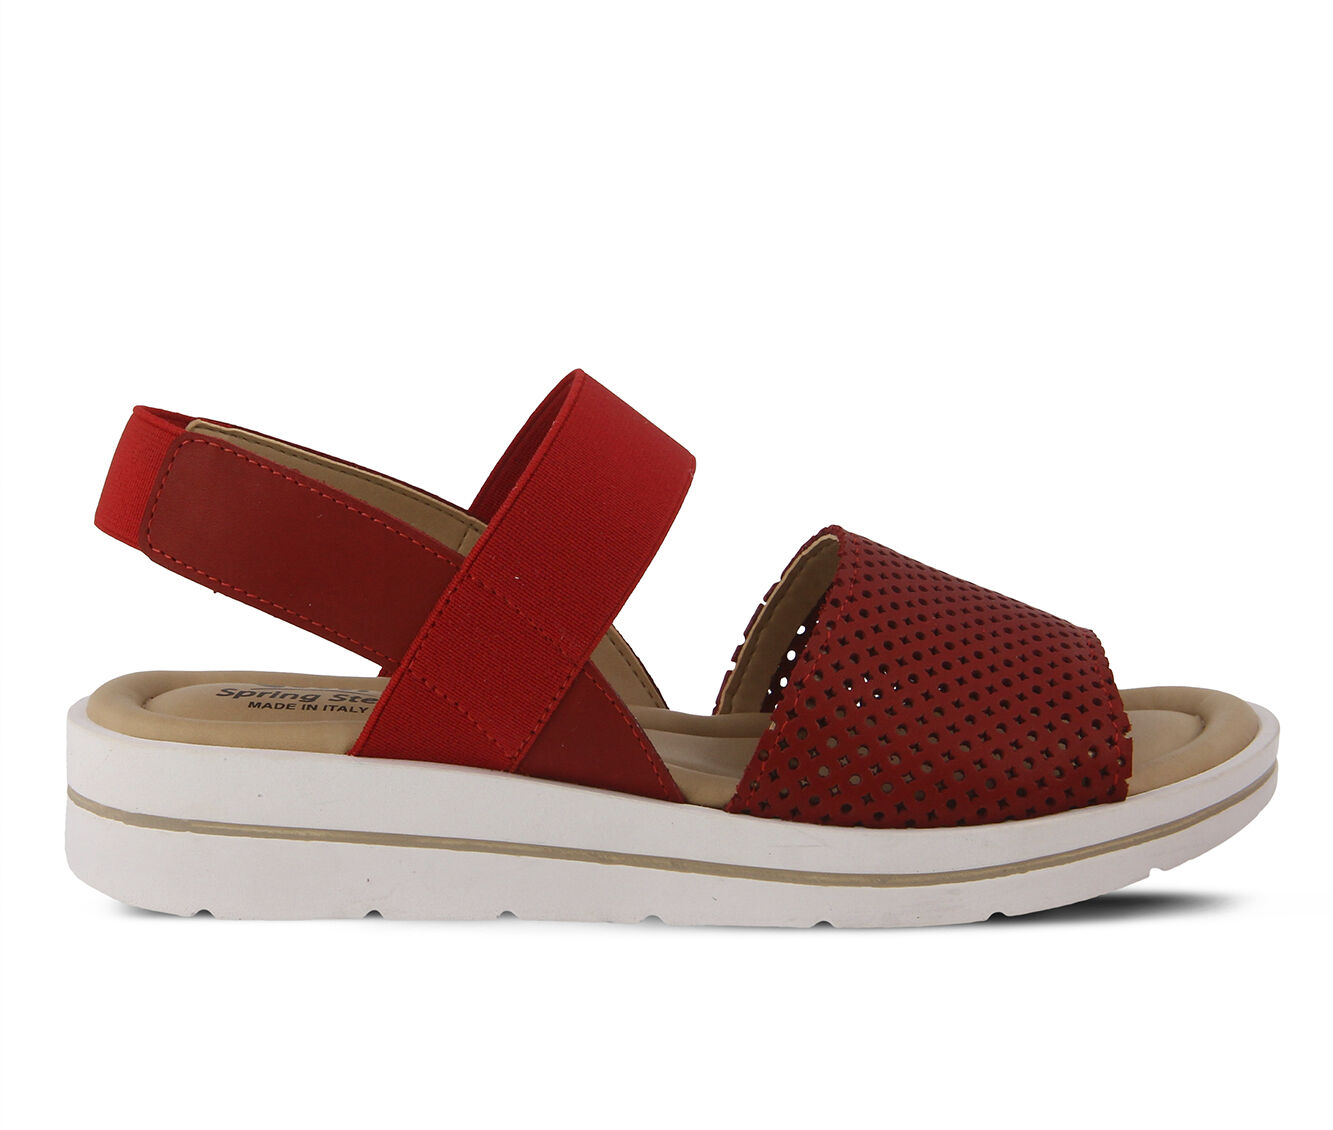 buy new Women's SPRING STEP Travel Sandals Red